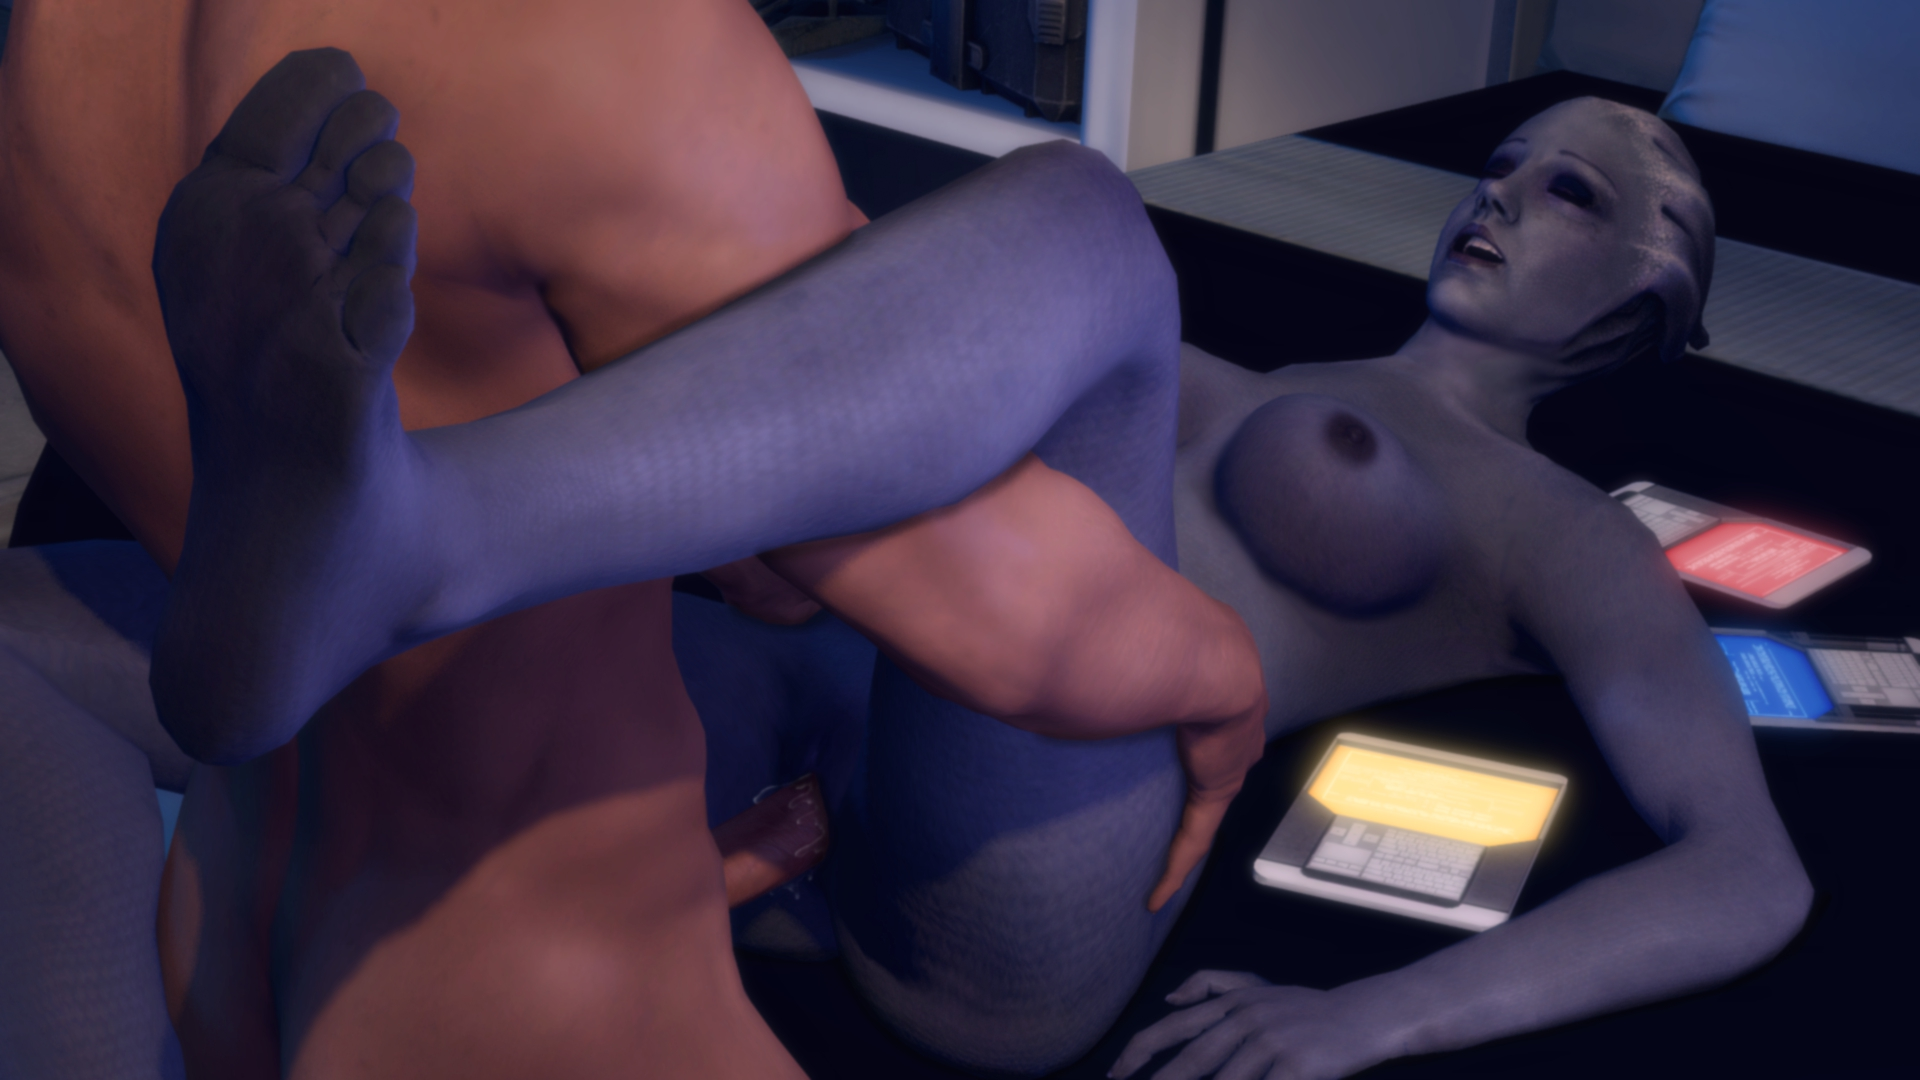 Mass effect liara porn videos erotic movie